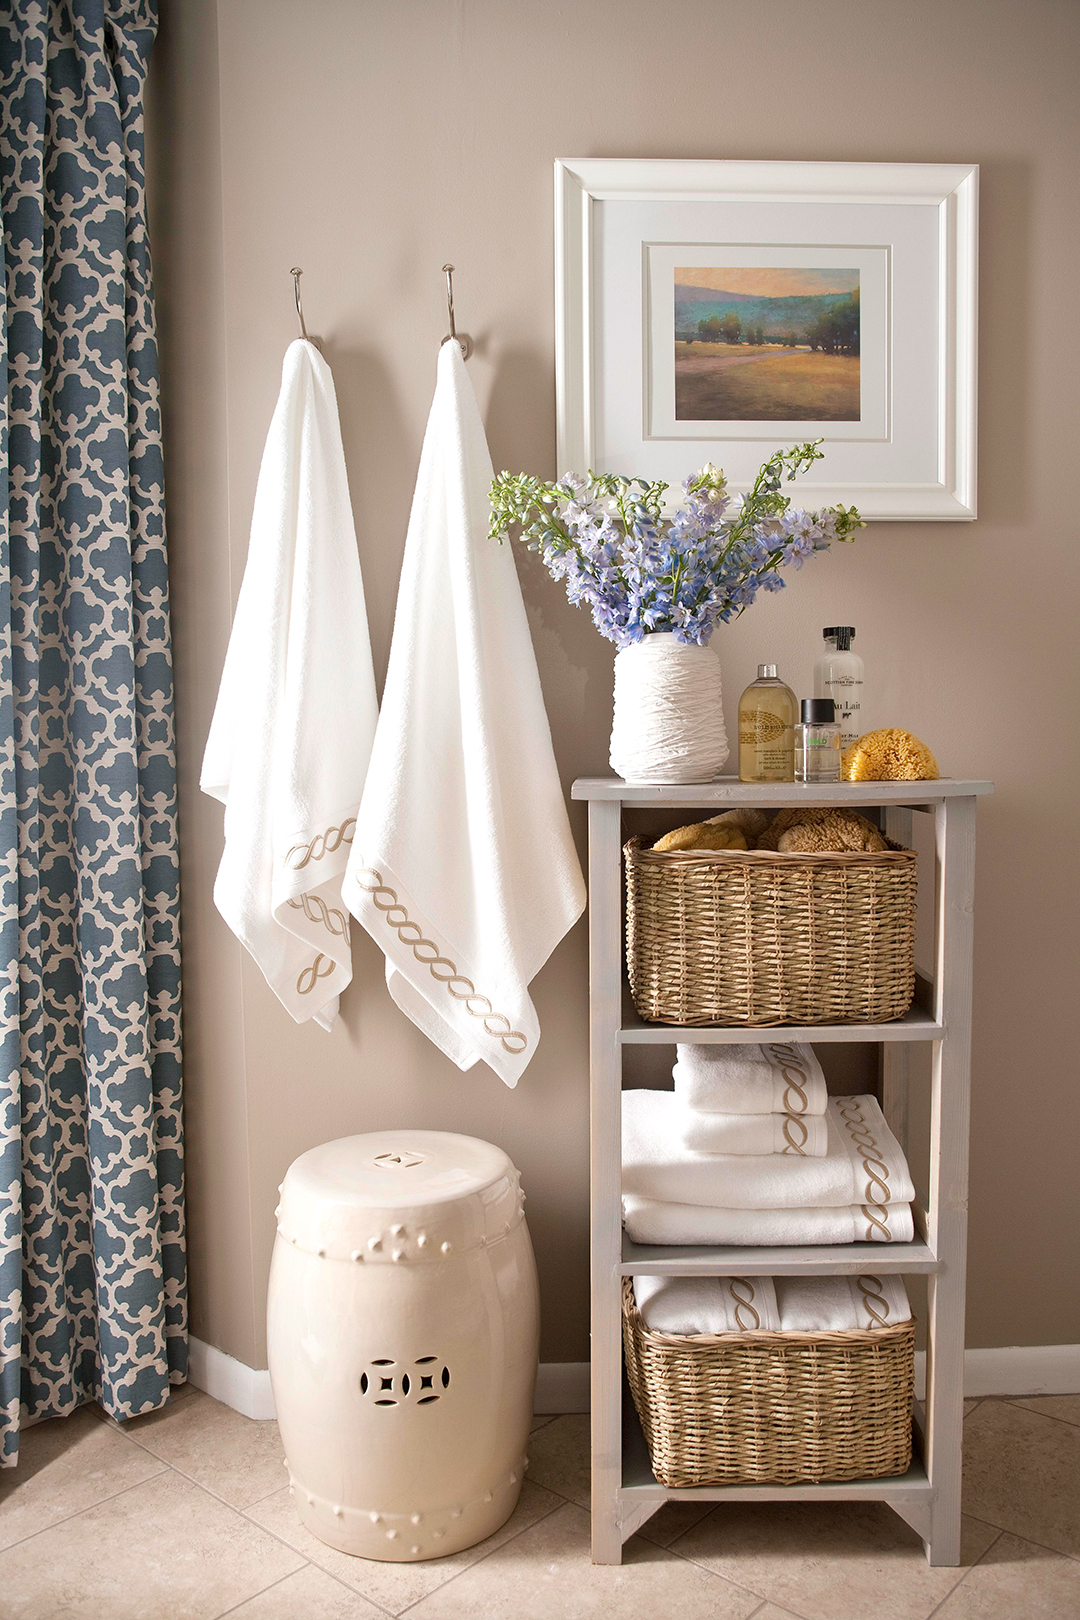 The 12 Best Bathroom Paint Colors Our Editors Swear